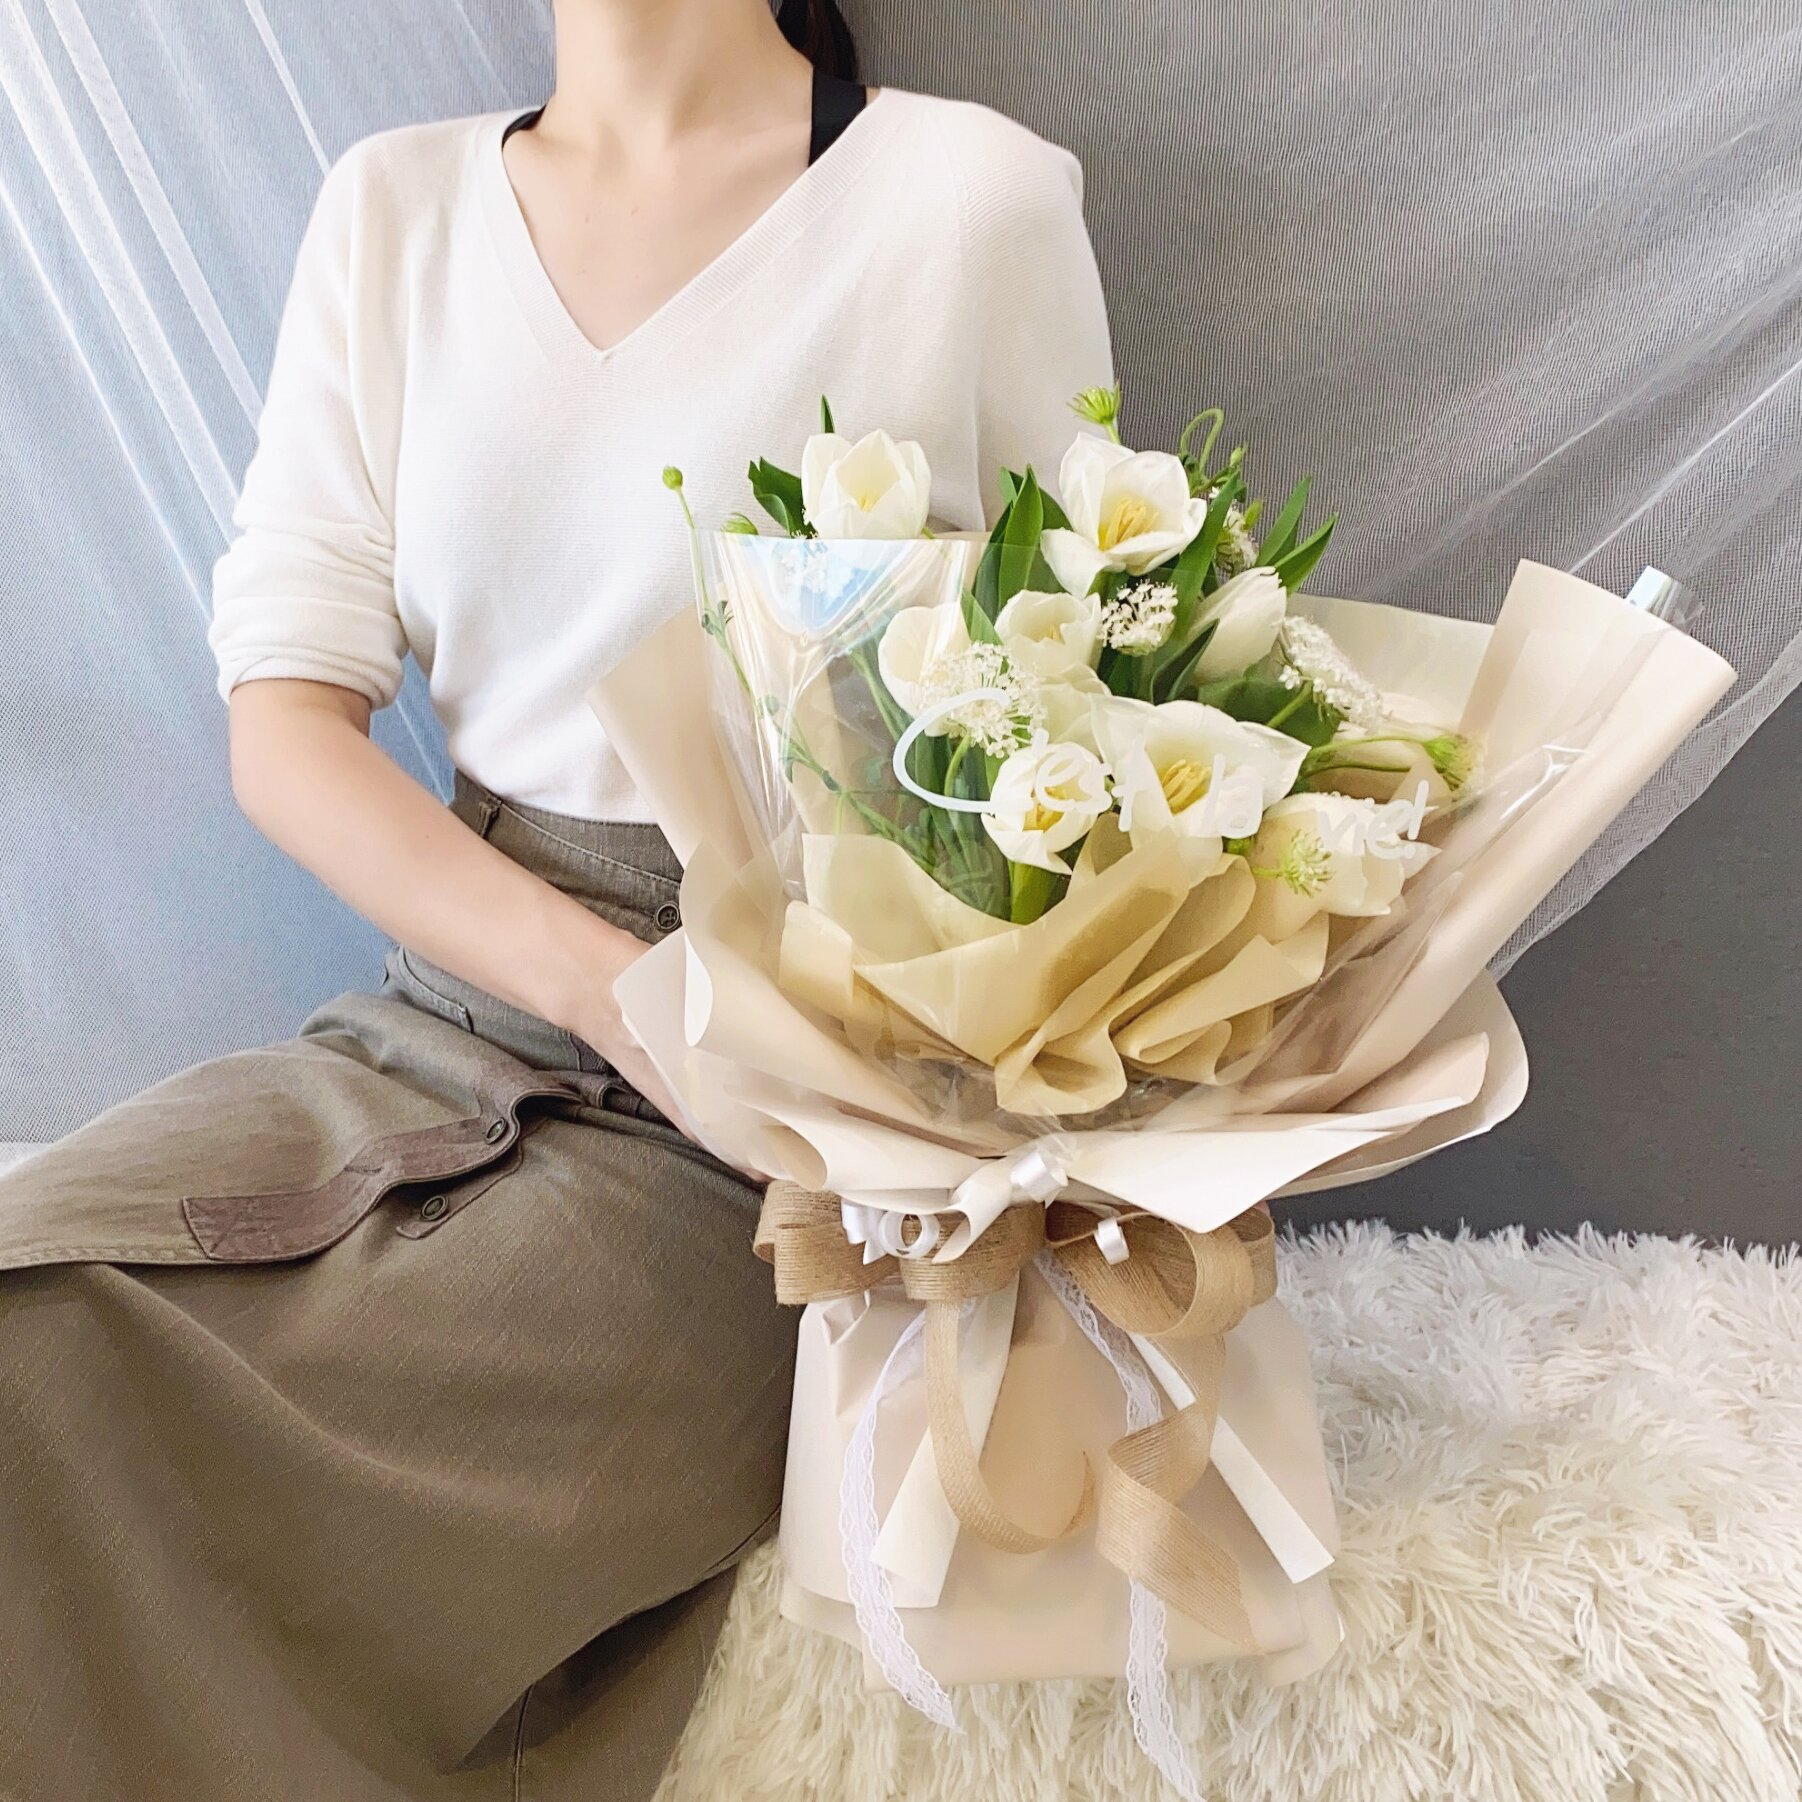 Only Beauty - Freeland Floral 自由花苑